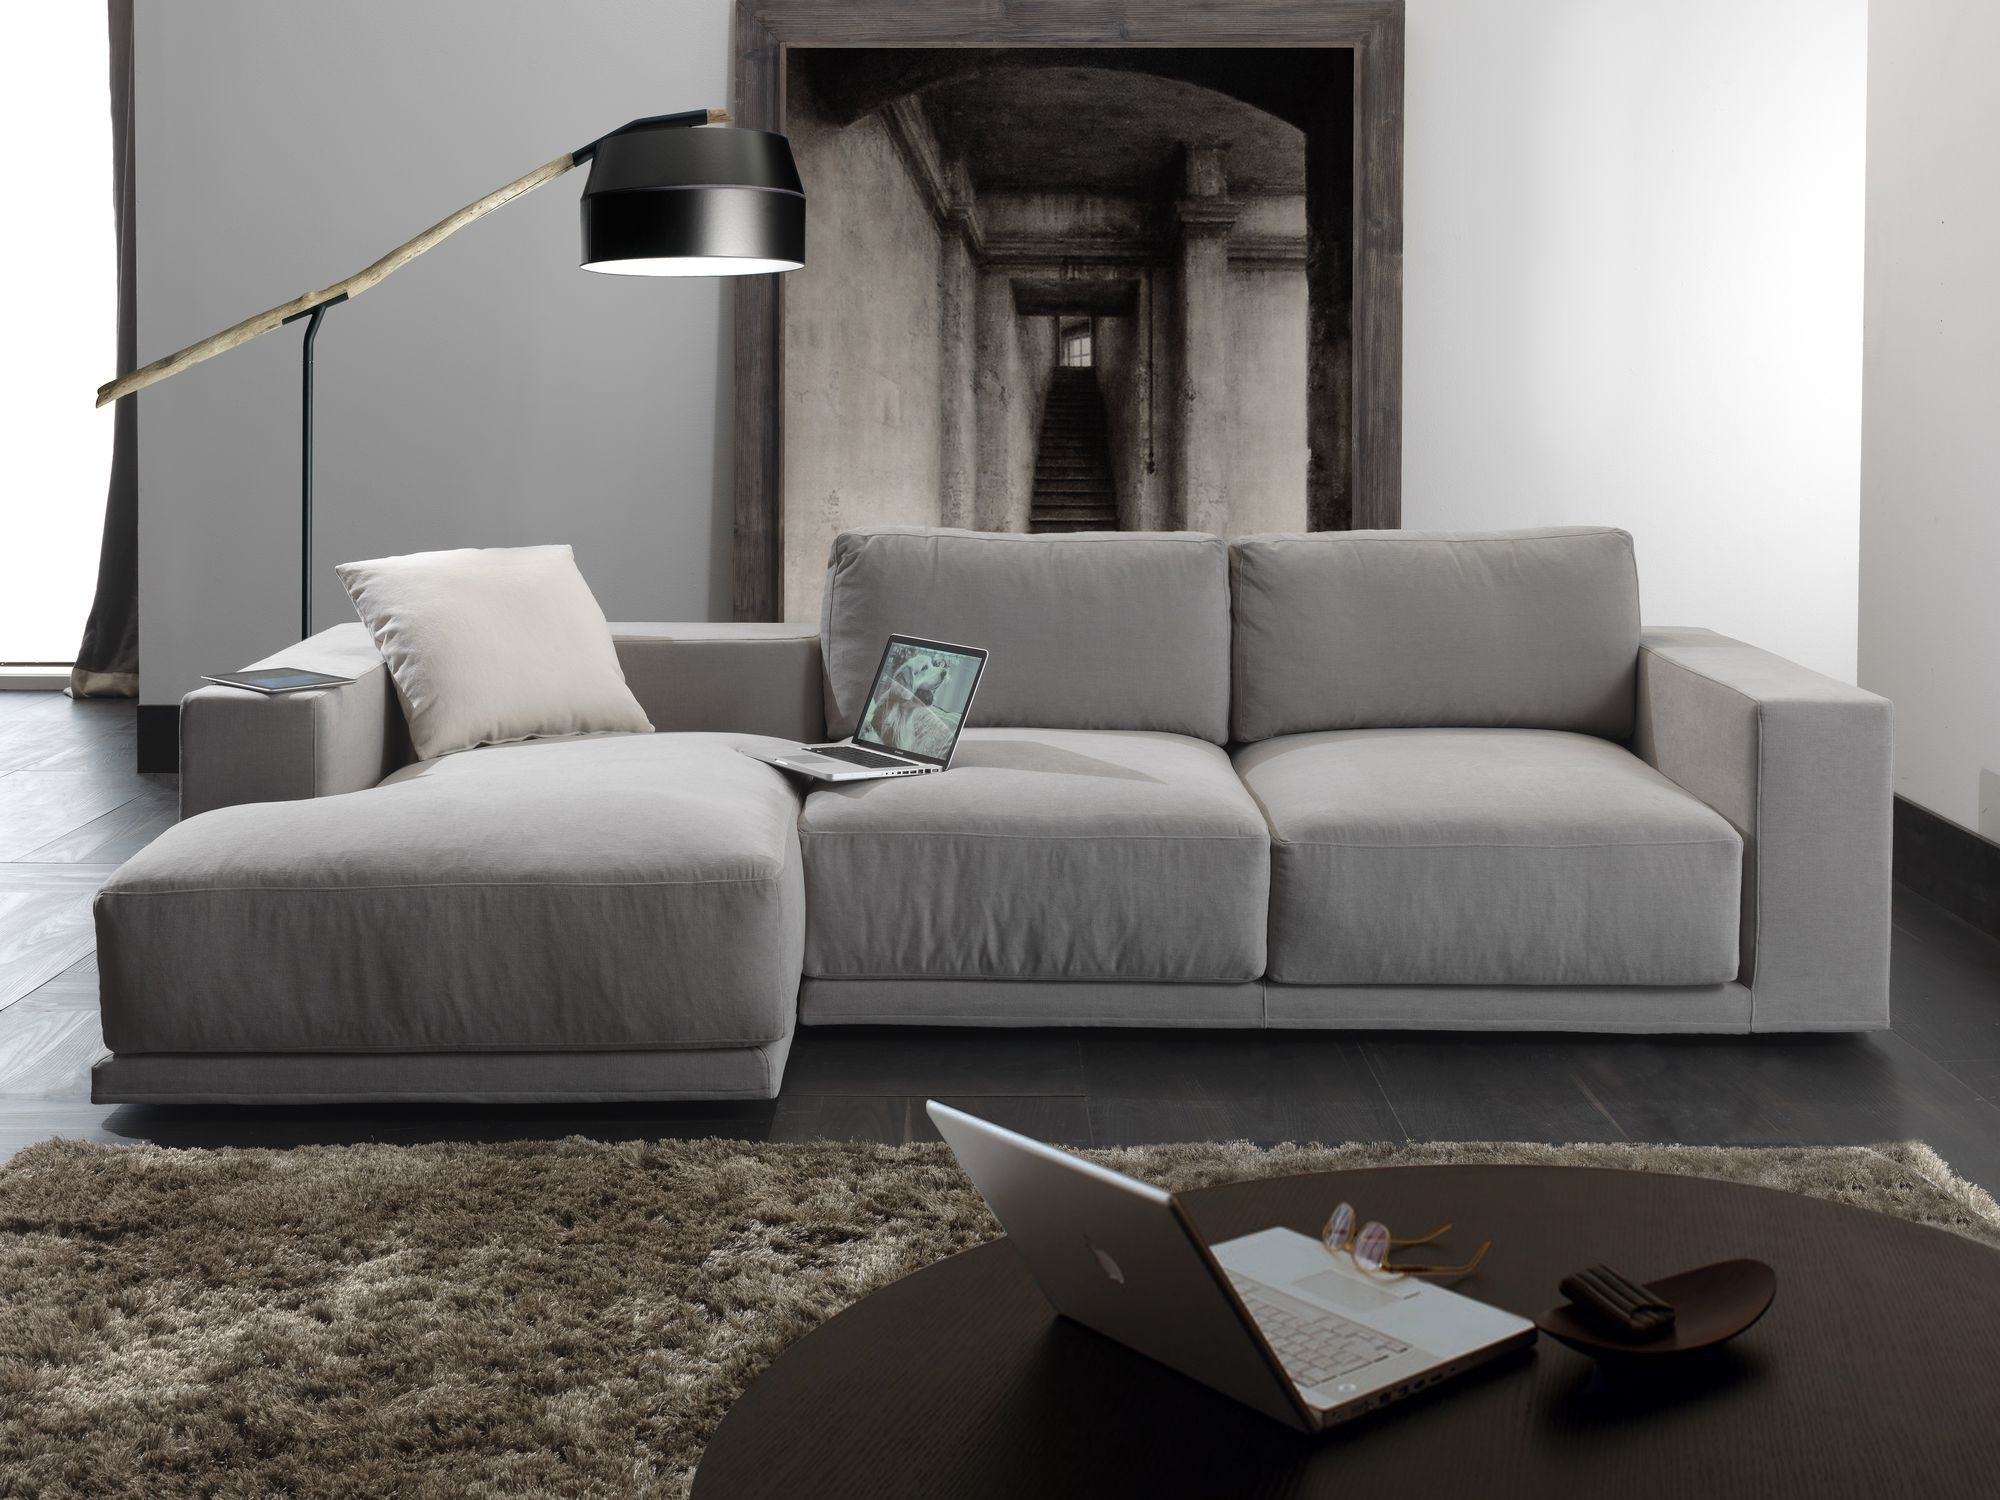 Modular Sofa / Contemporary / Fabric / 3 Seater – Relax Square Pertaining To Latest Contemporary Fabric Sofas (View 4 of 15)